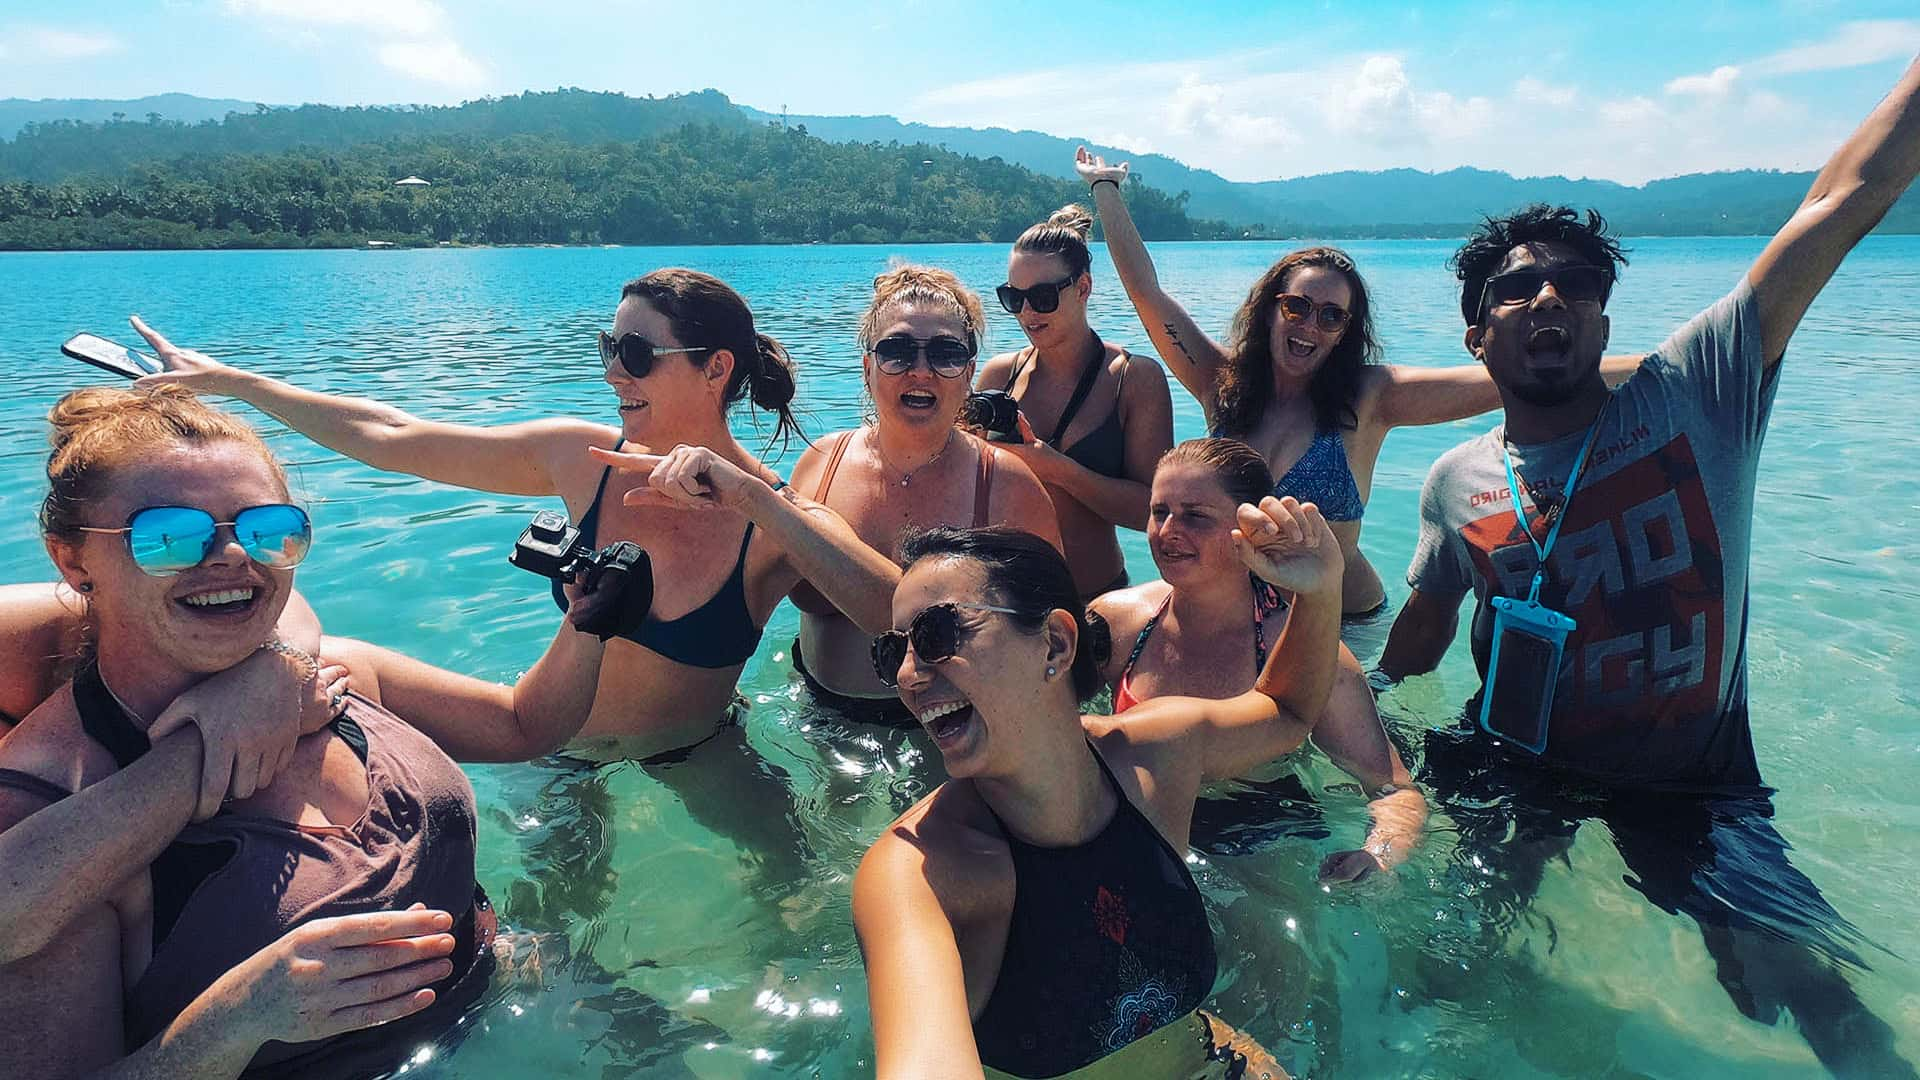 What to do in El Nido after the island hopping tours